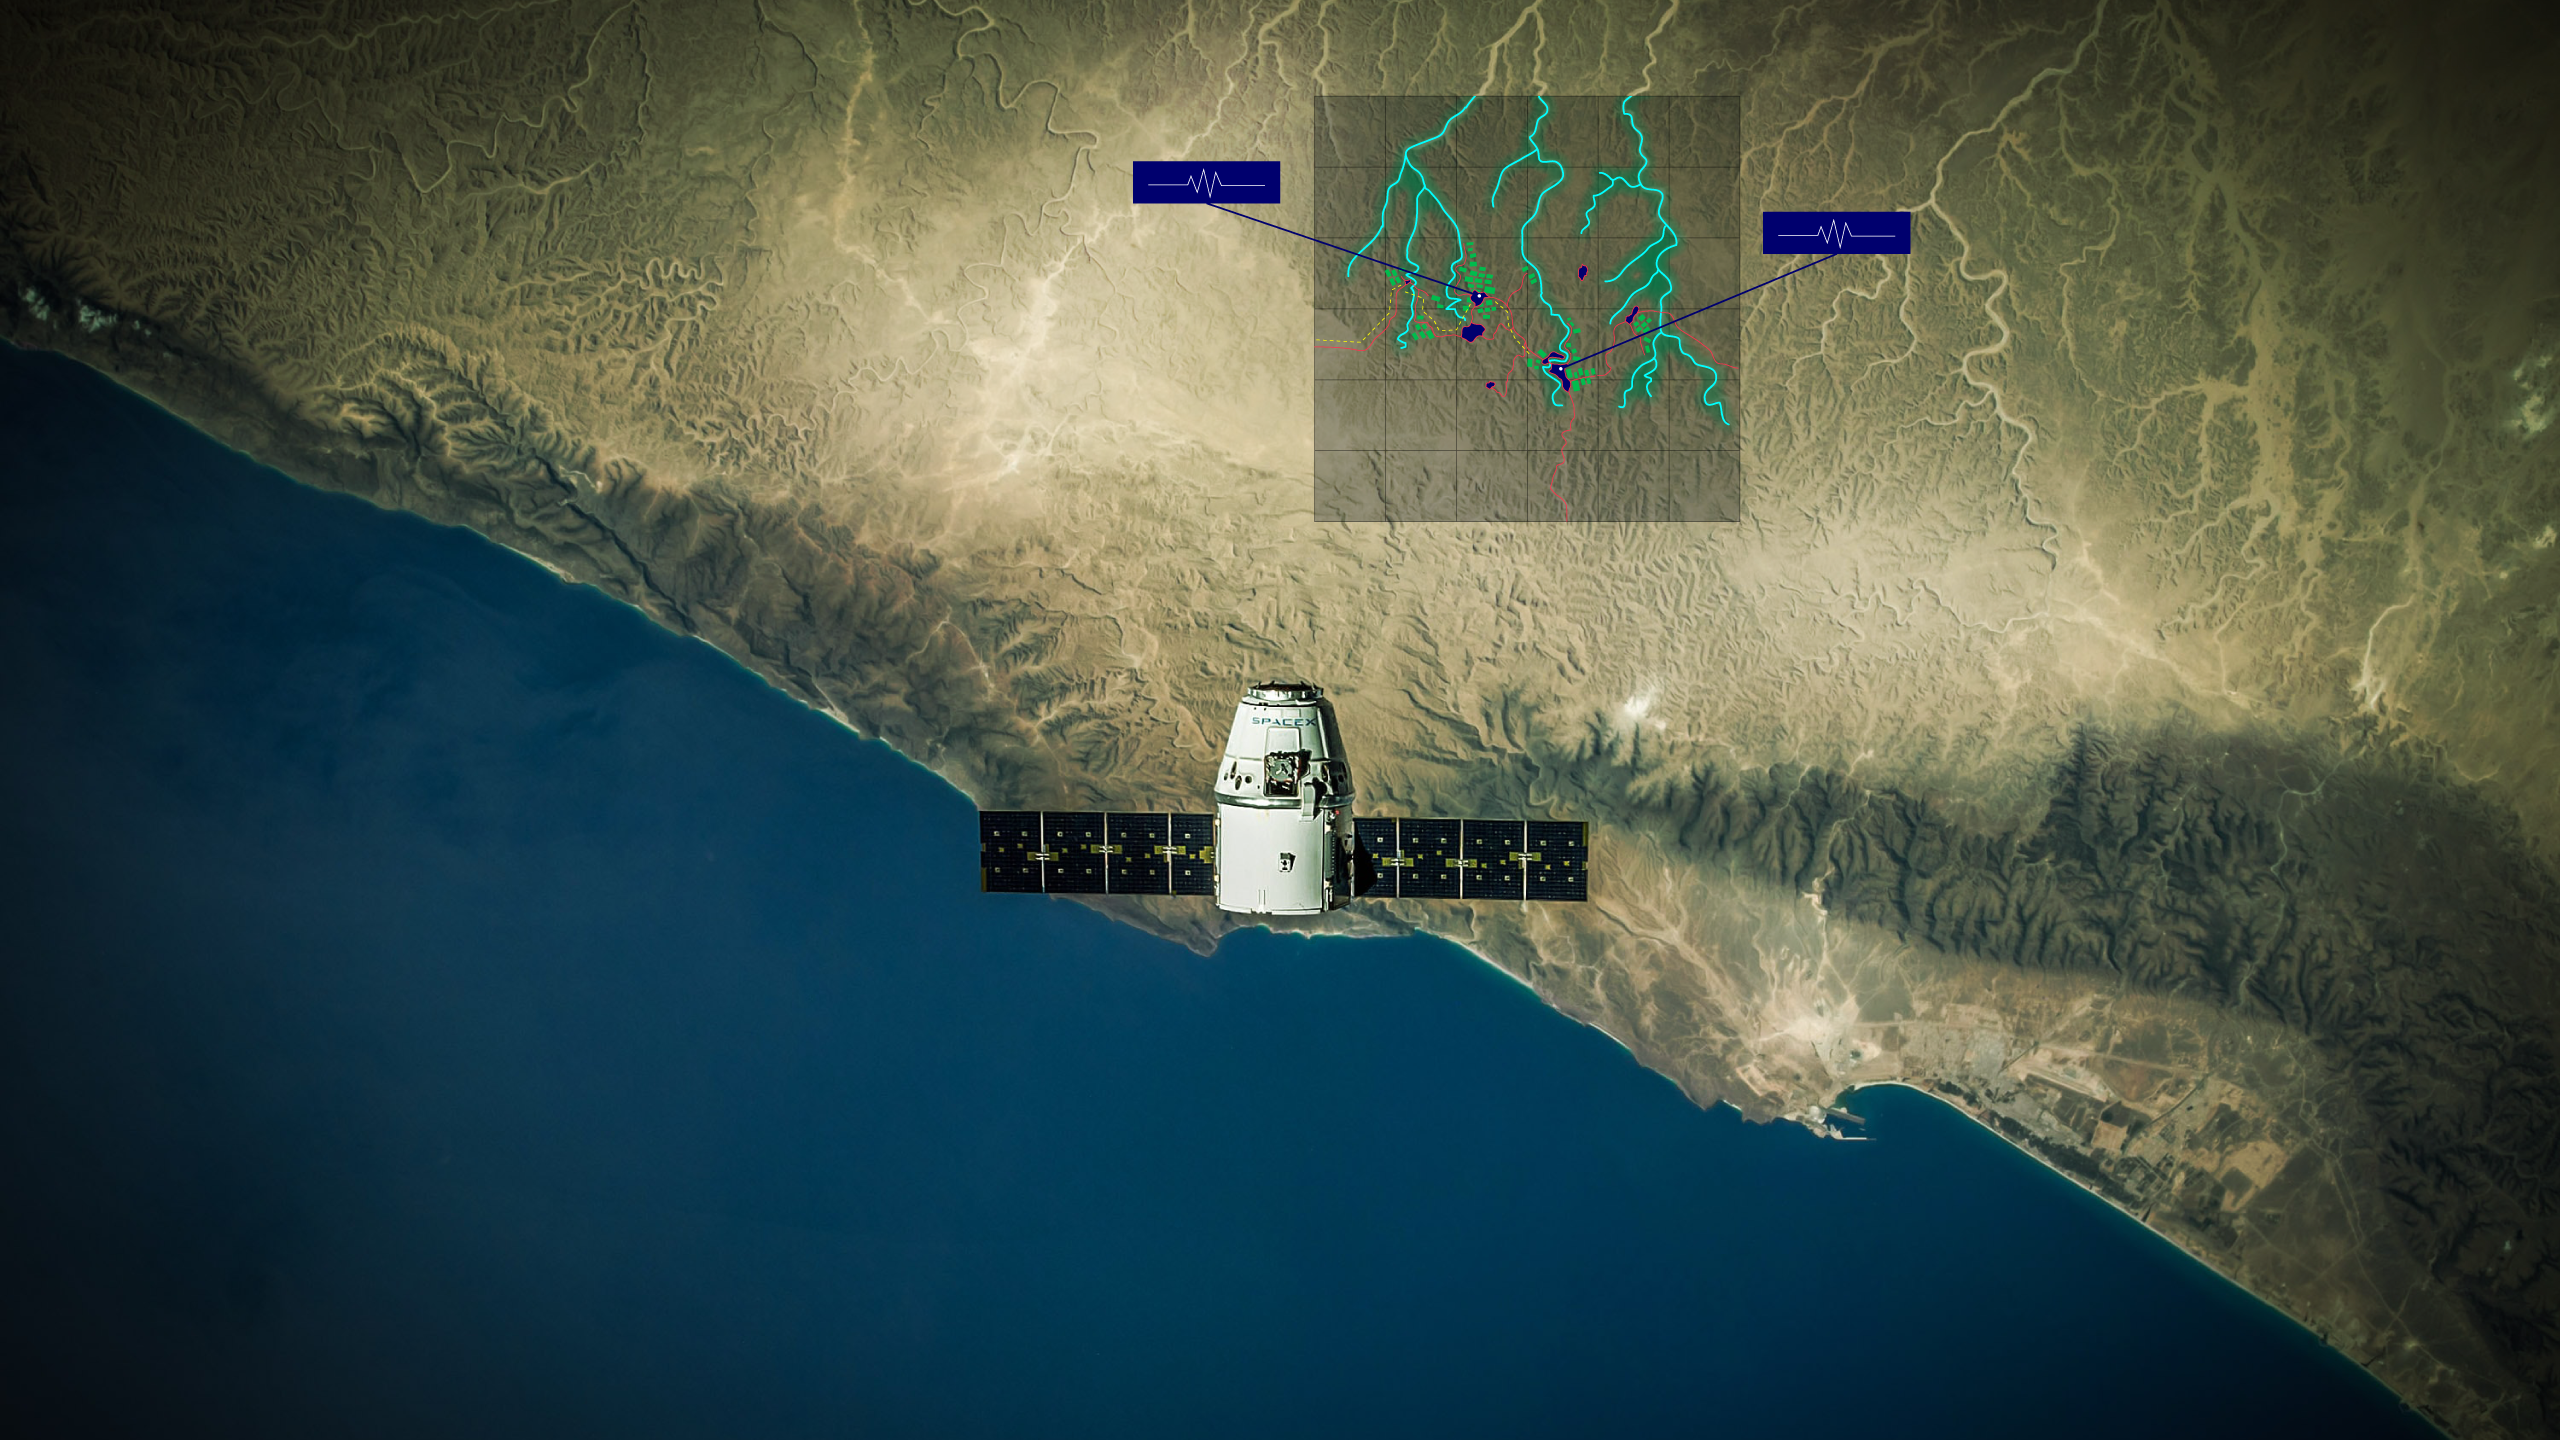 VIDA uses earth observation, data analysis and AI to make visible the investment opportunities in remote villages. ©SpaceX and Village Data Analytics